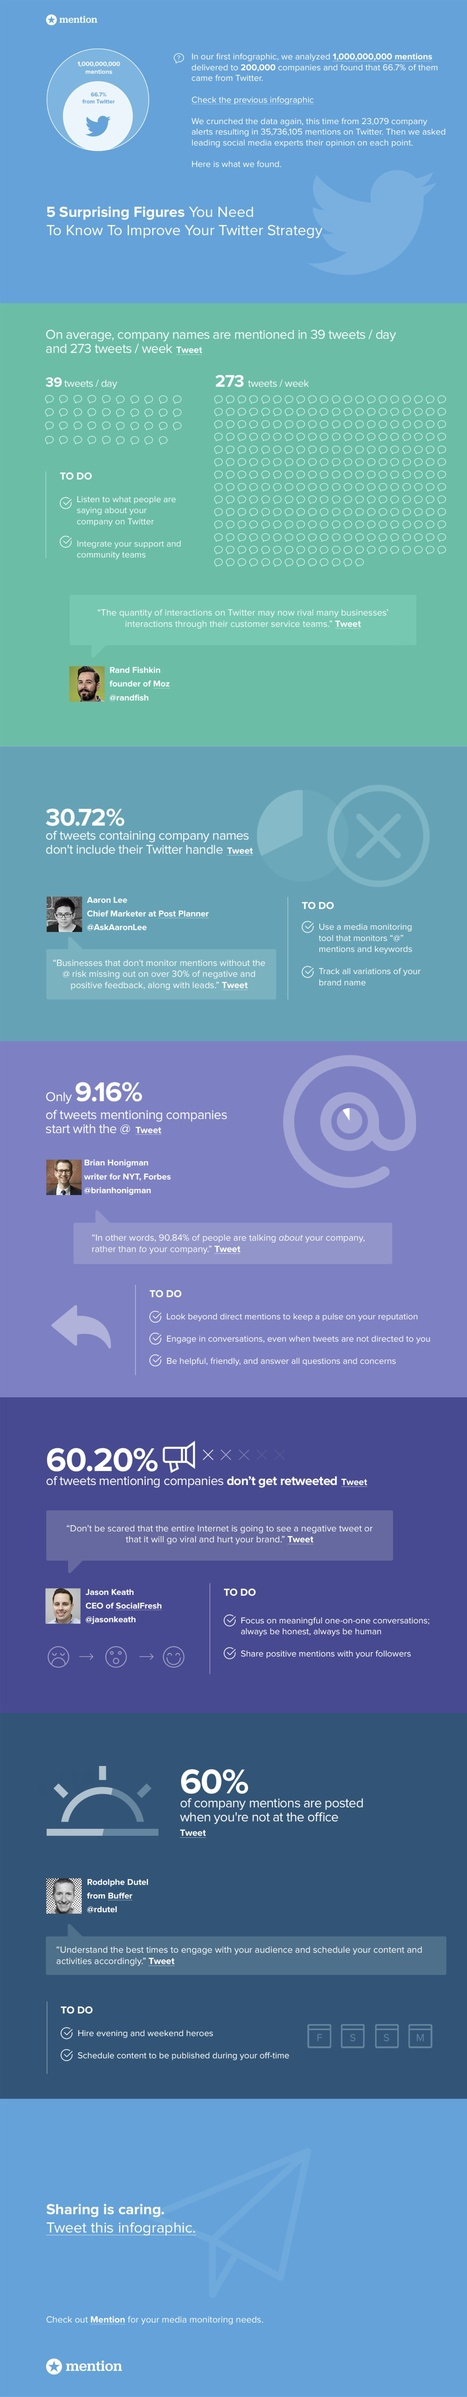 5 Tips You Need to Know to Improve Your Twitter Strategy #infographic | MarketingHits | Scoop.it